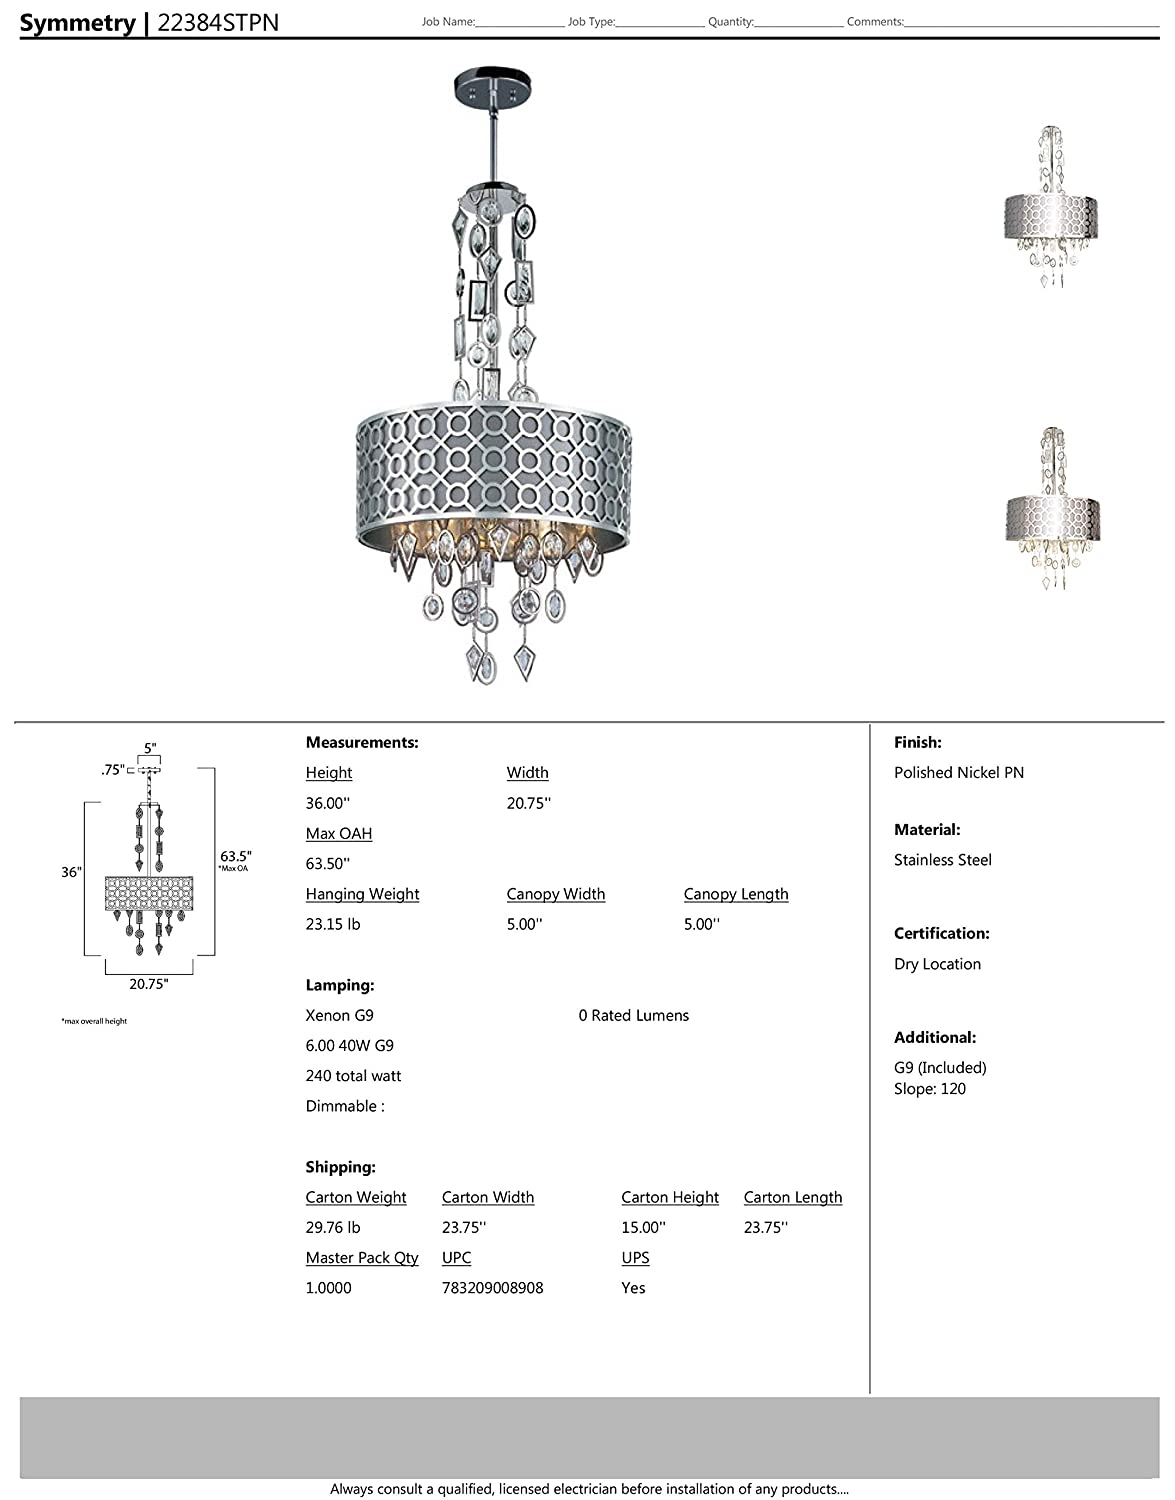 100W Max. Standard Dimmable Polished Nickel Finish Wet Safety Rating Glass G9 Xenon Bulb Maxim 22384STPN Symmetry 6-Light Pendant 1150 Rated Lumens Maxim Lighting Glass Shade Material